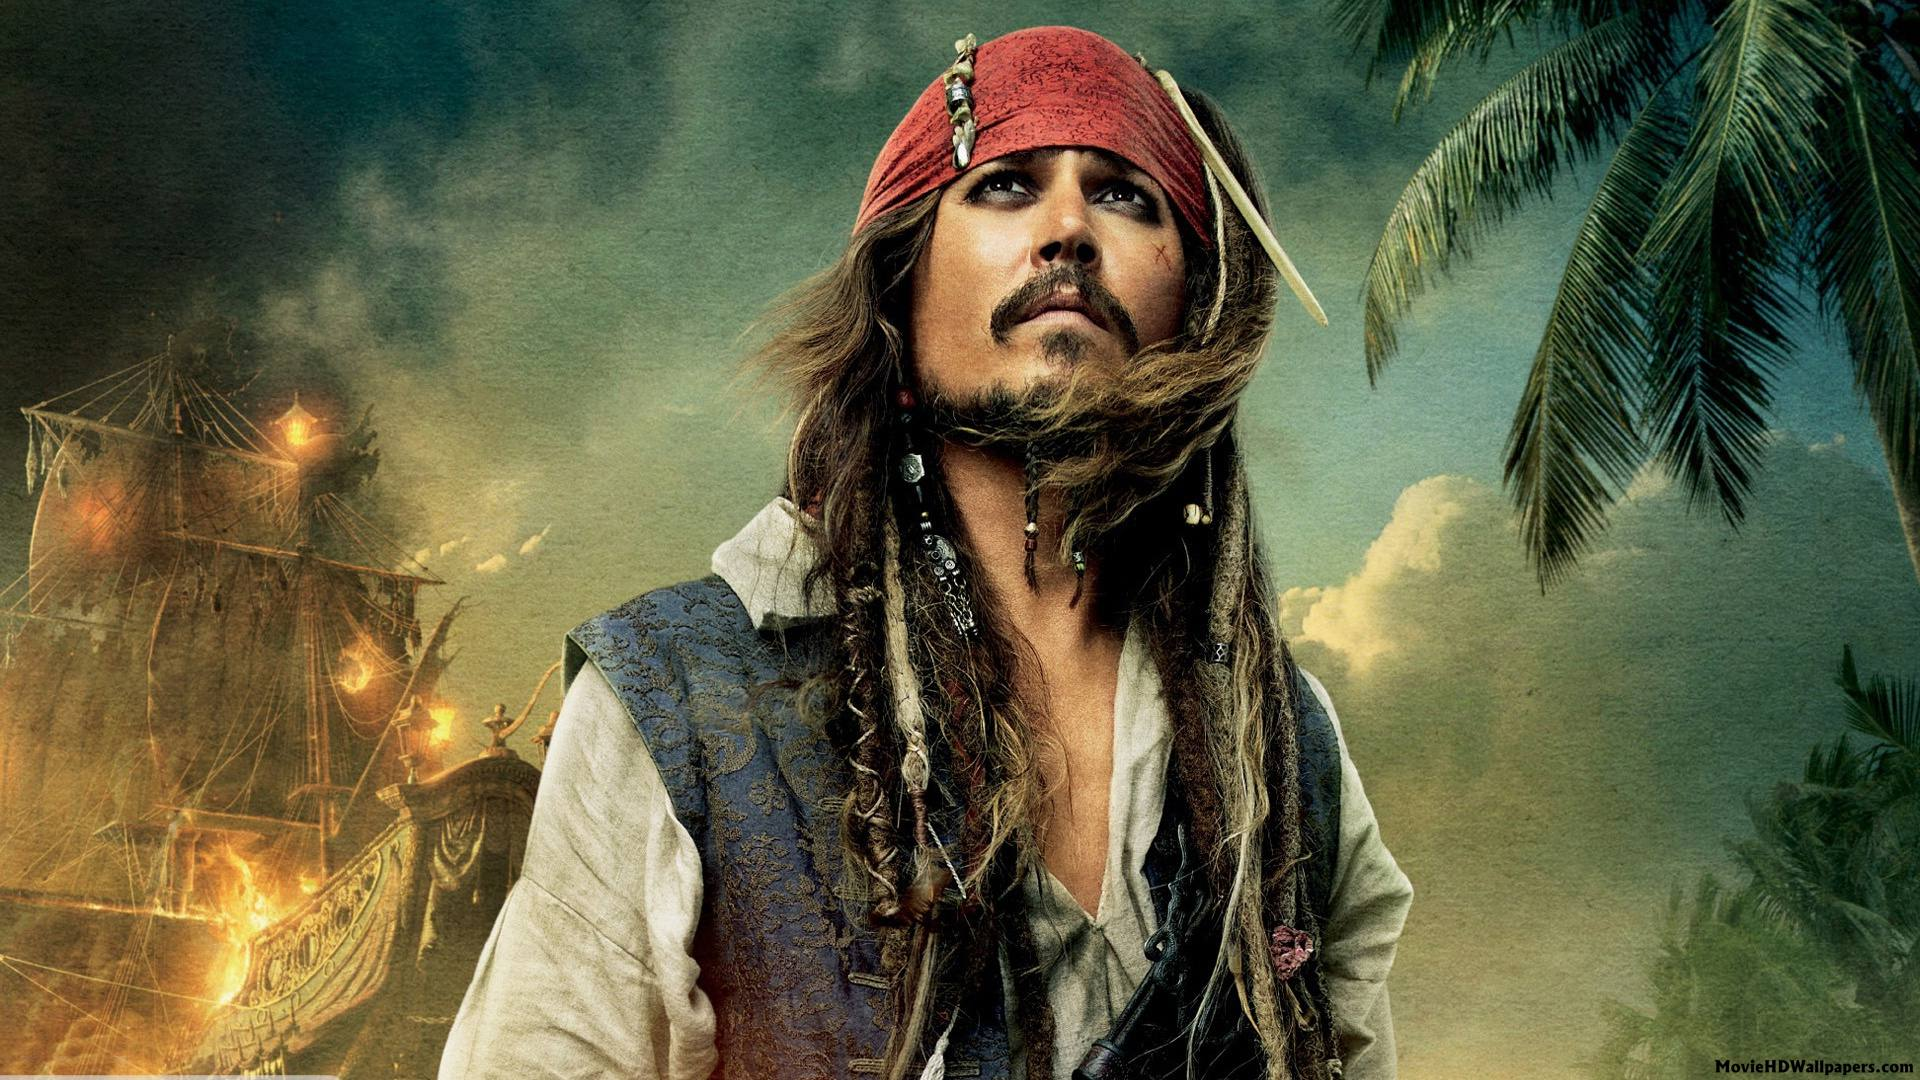 Pirates of the caribbean hd wallpapers wallpaper cave - Pirates of the caribbean images hd ...